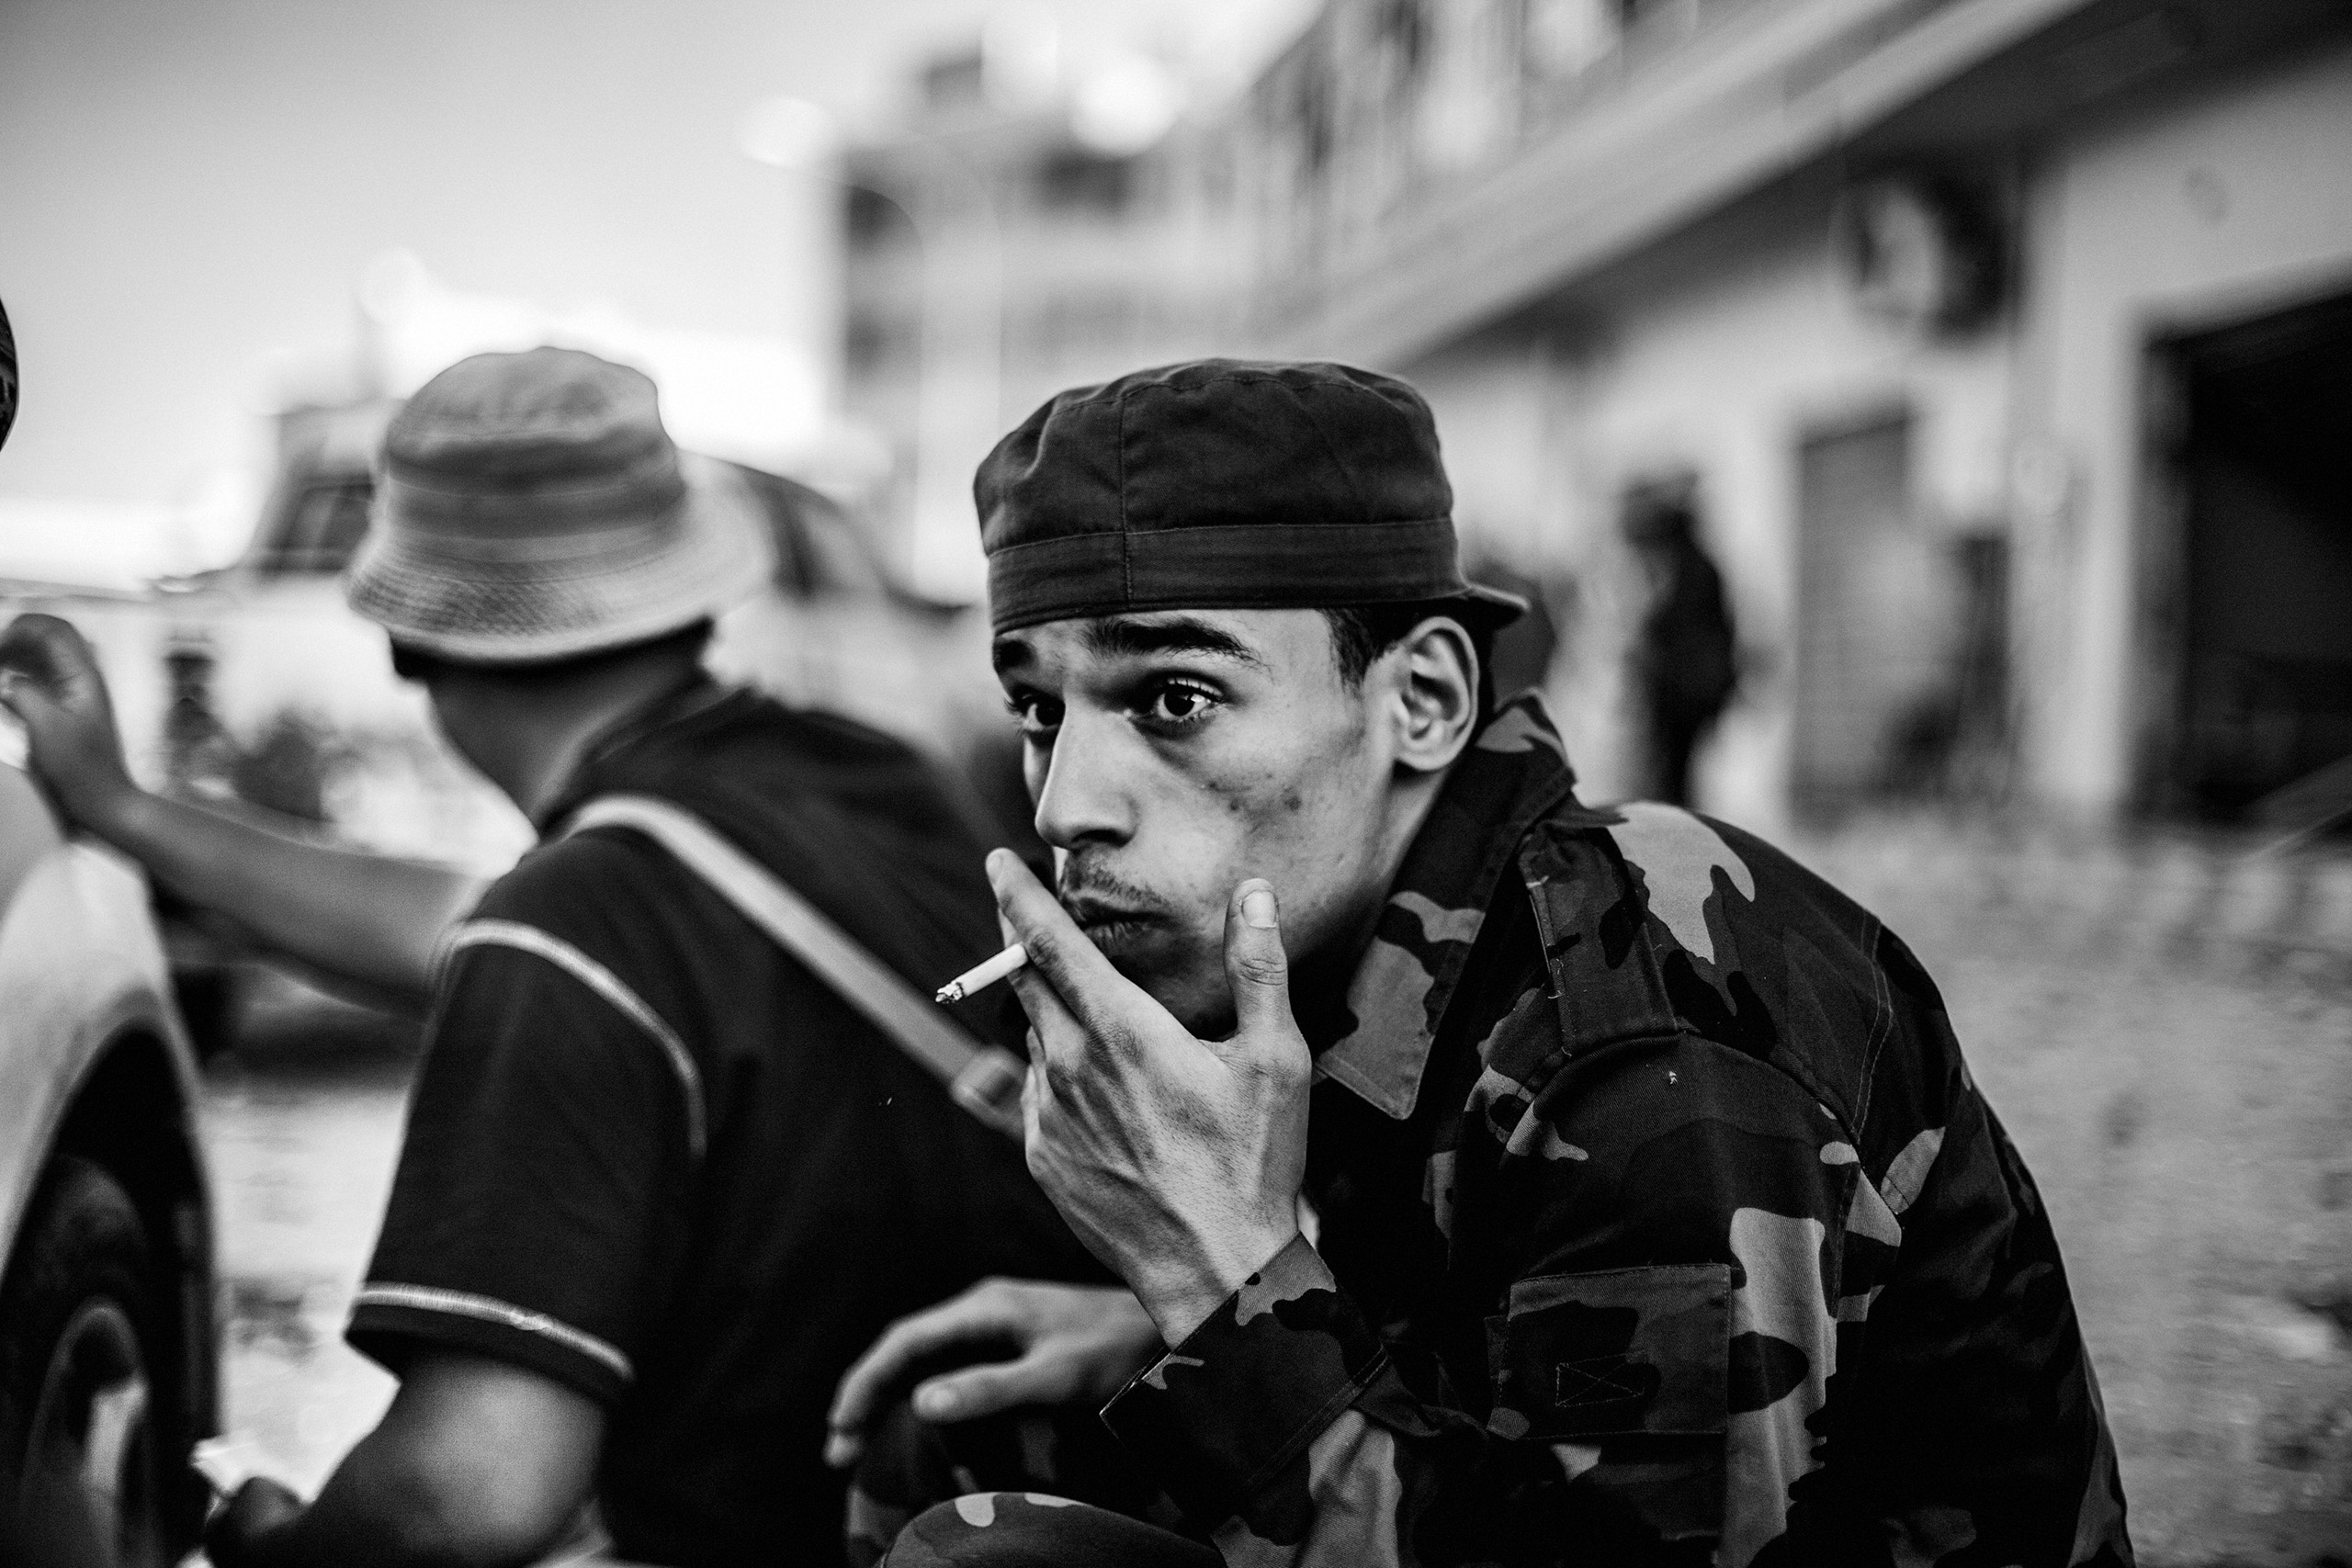 A revolutionary fighter seeks shelter from sniper fire by forces loyal to Muammar Gaddafi, Sirte, Libya,  Oct. 12, 2011.